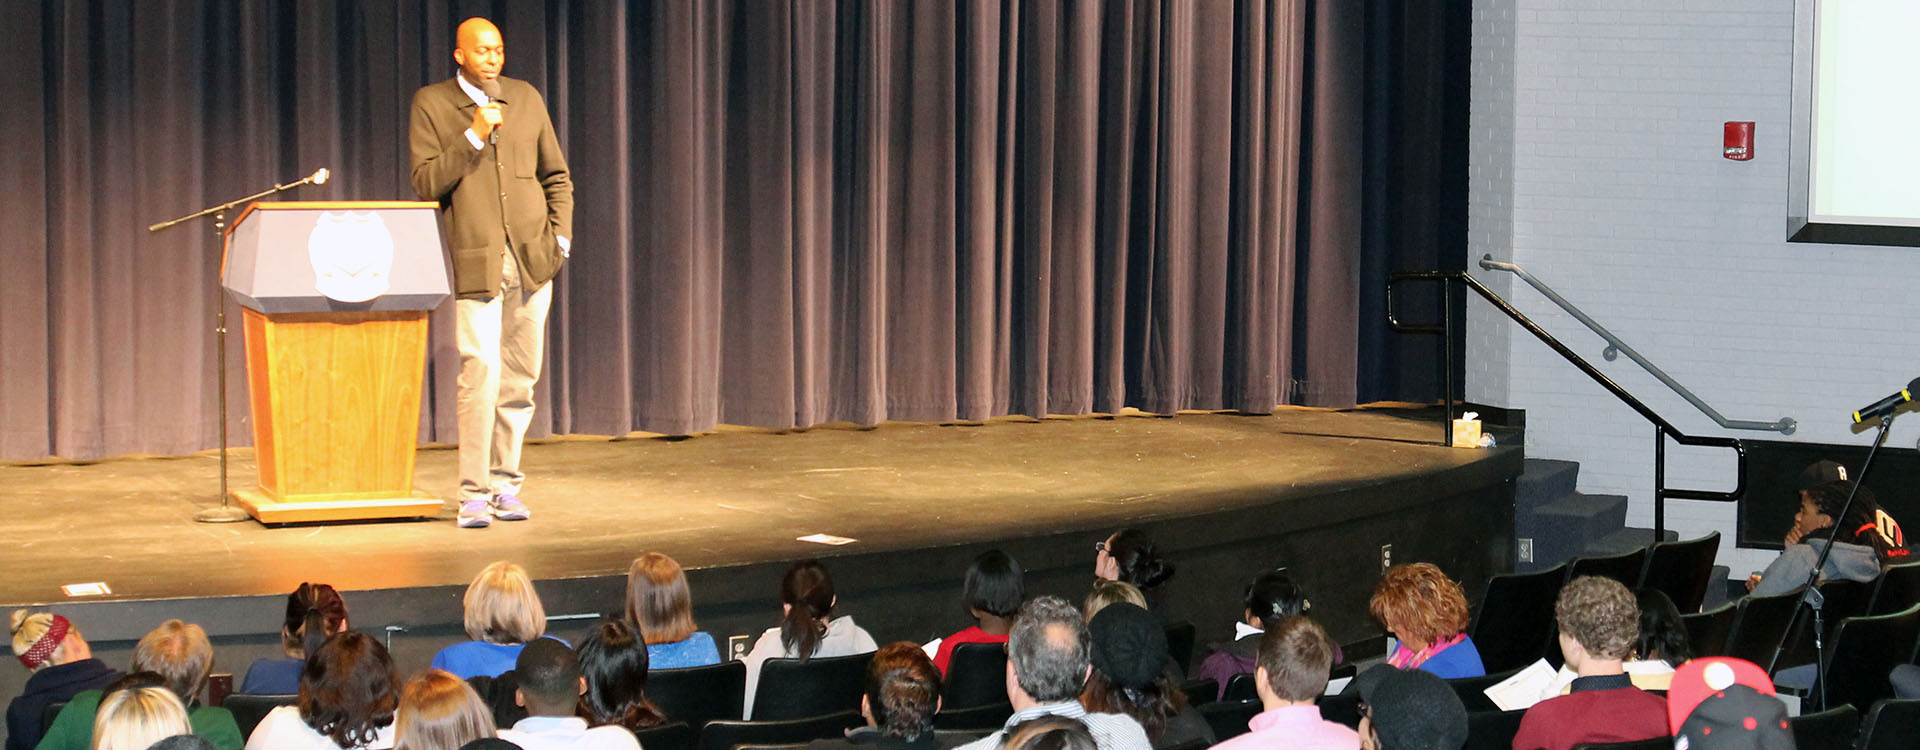 public speaker standing on stage in front of audience